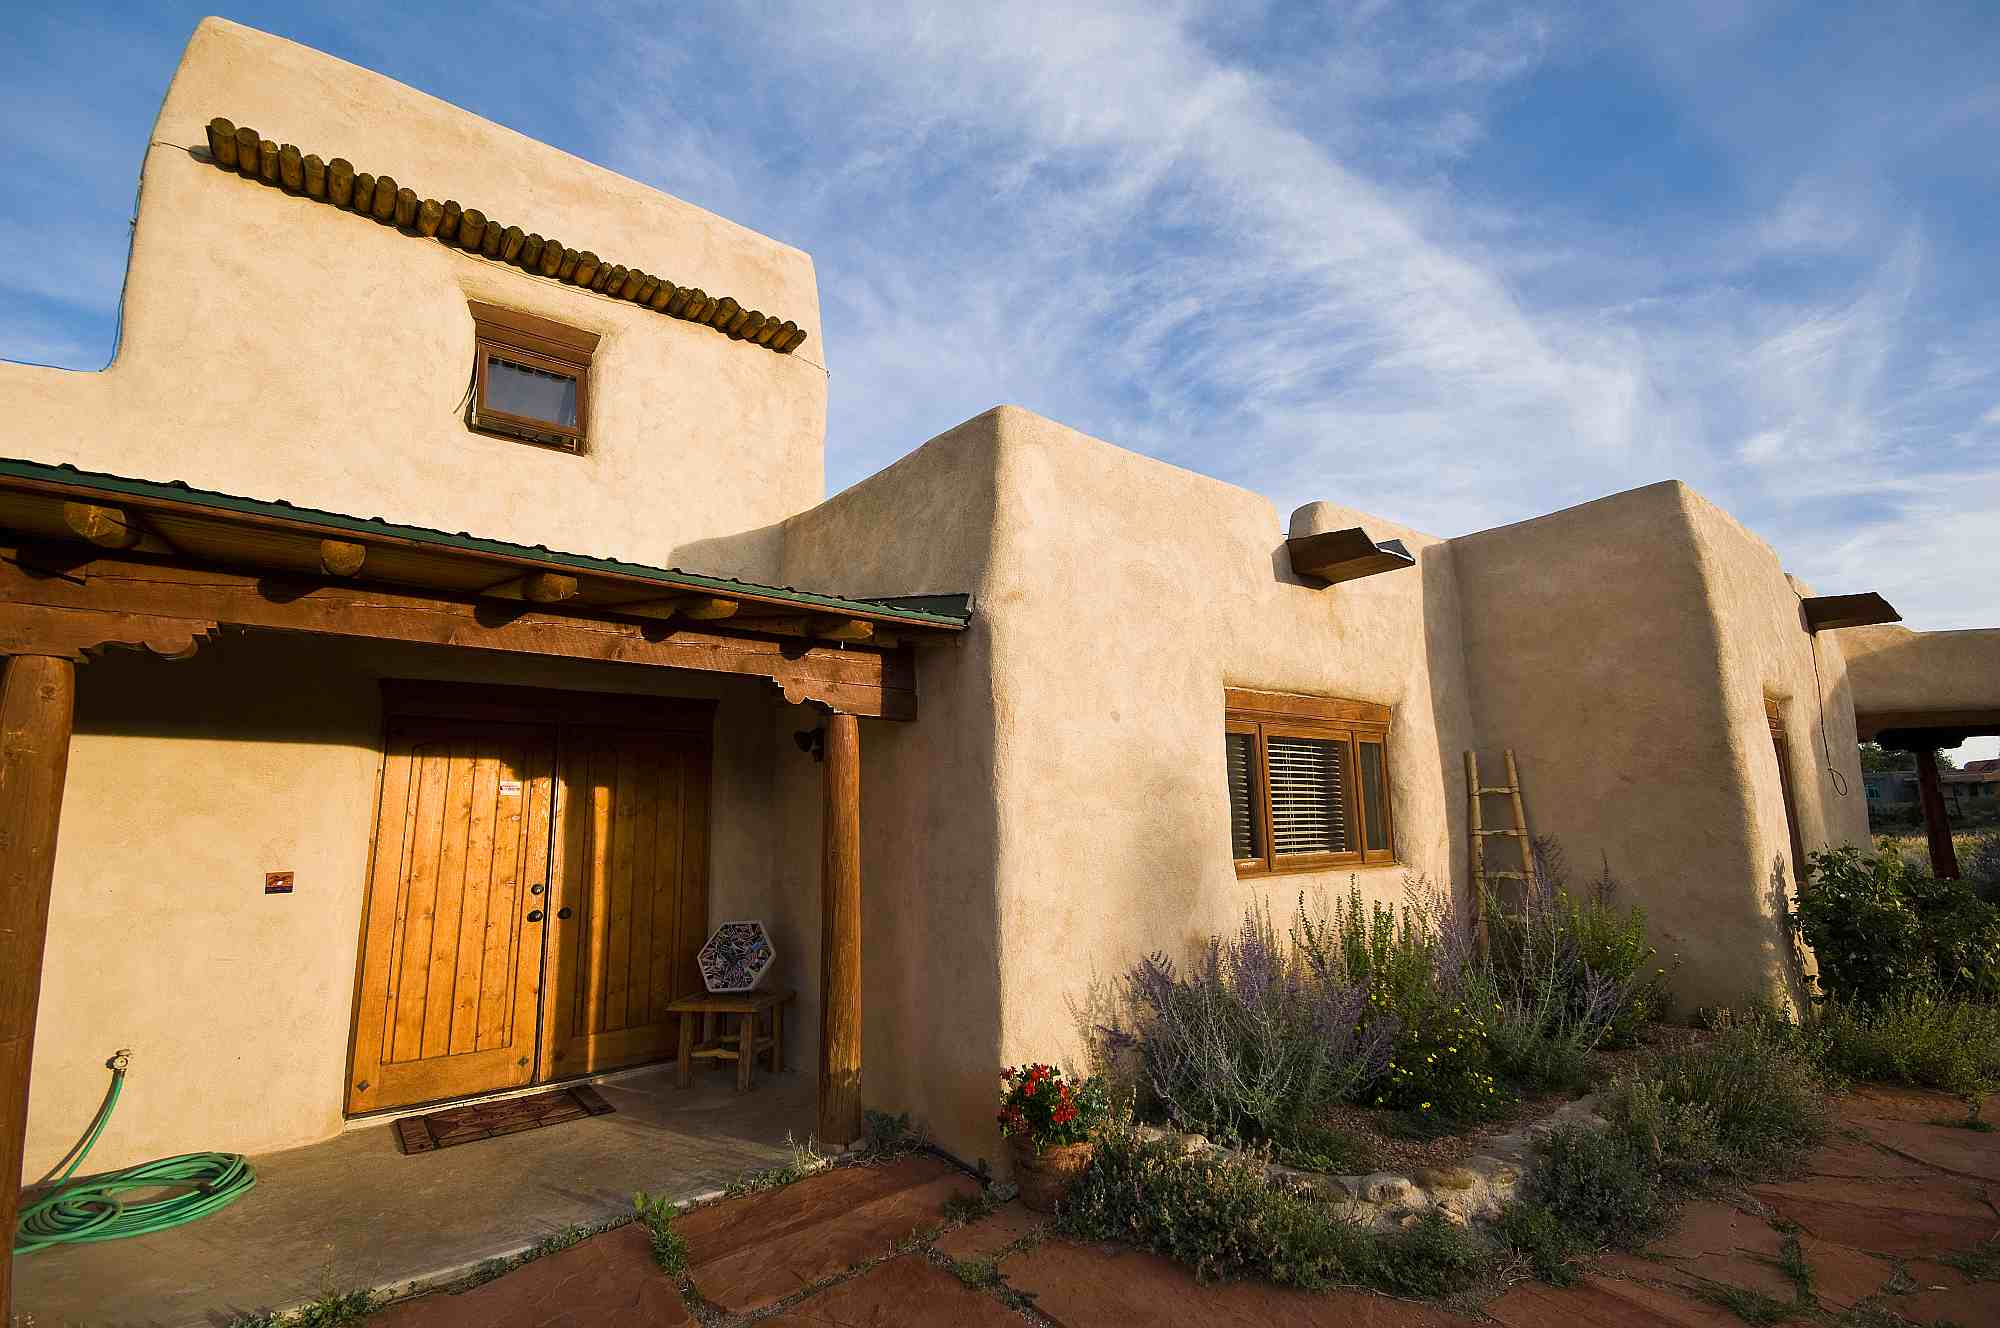 Adobe pueblo style house in new mexico